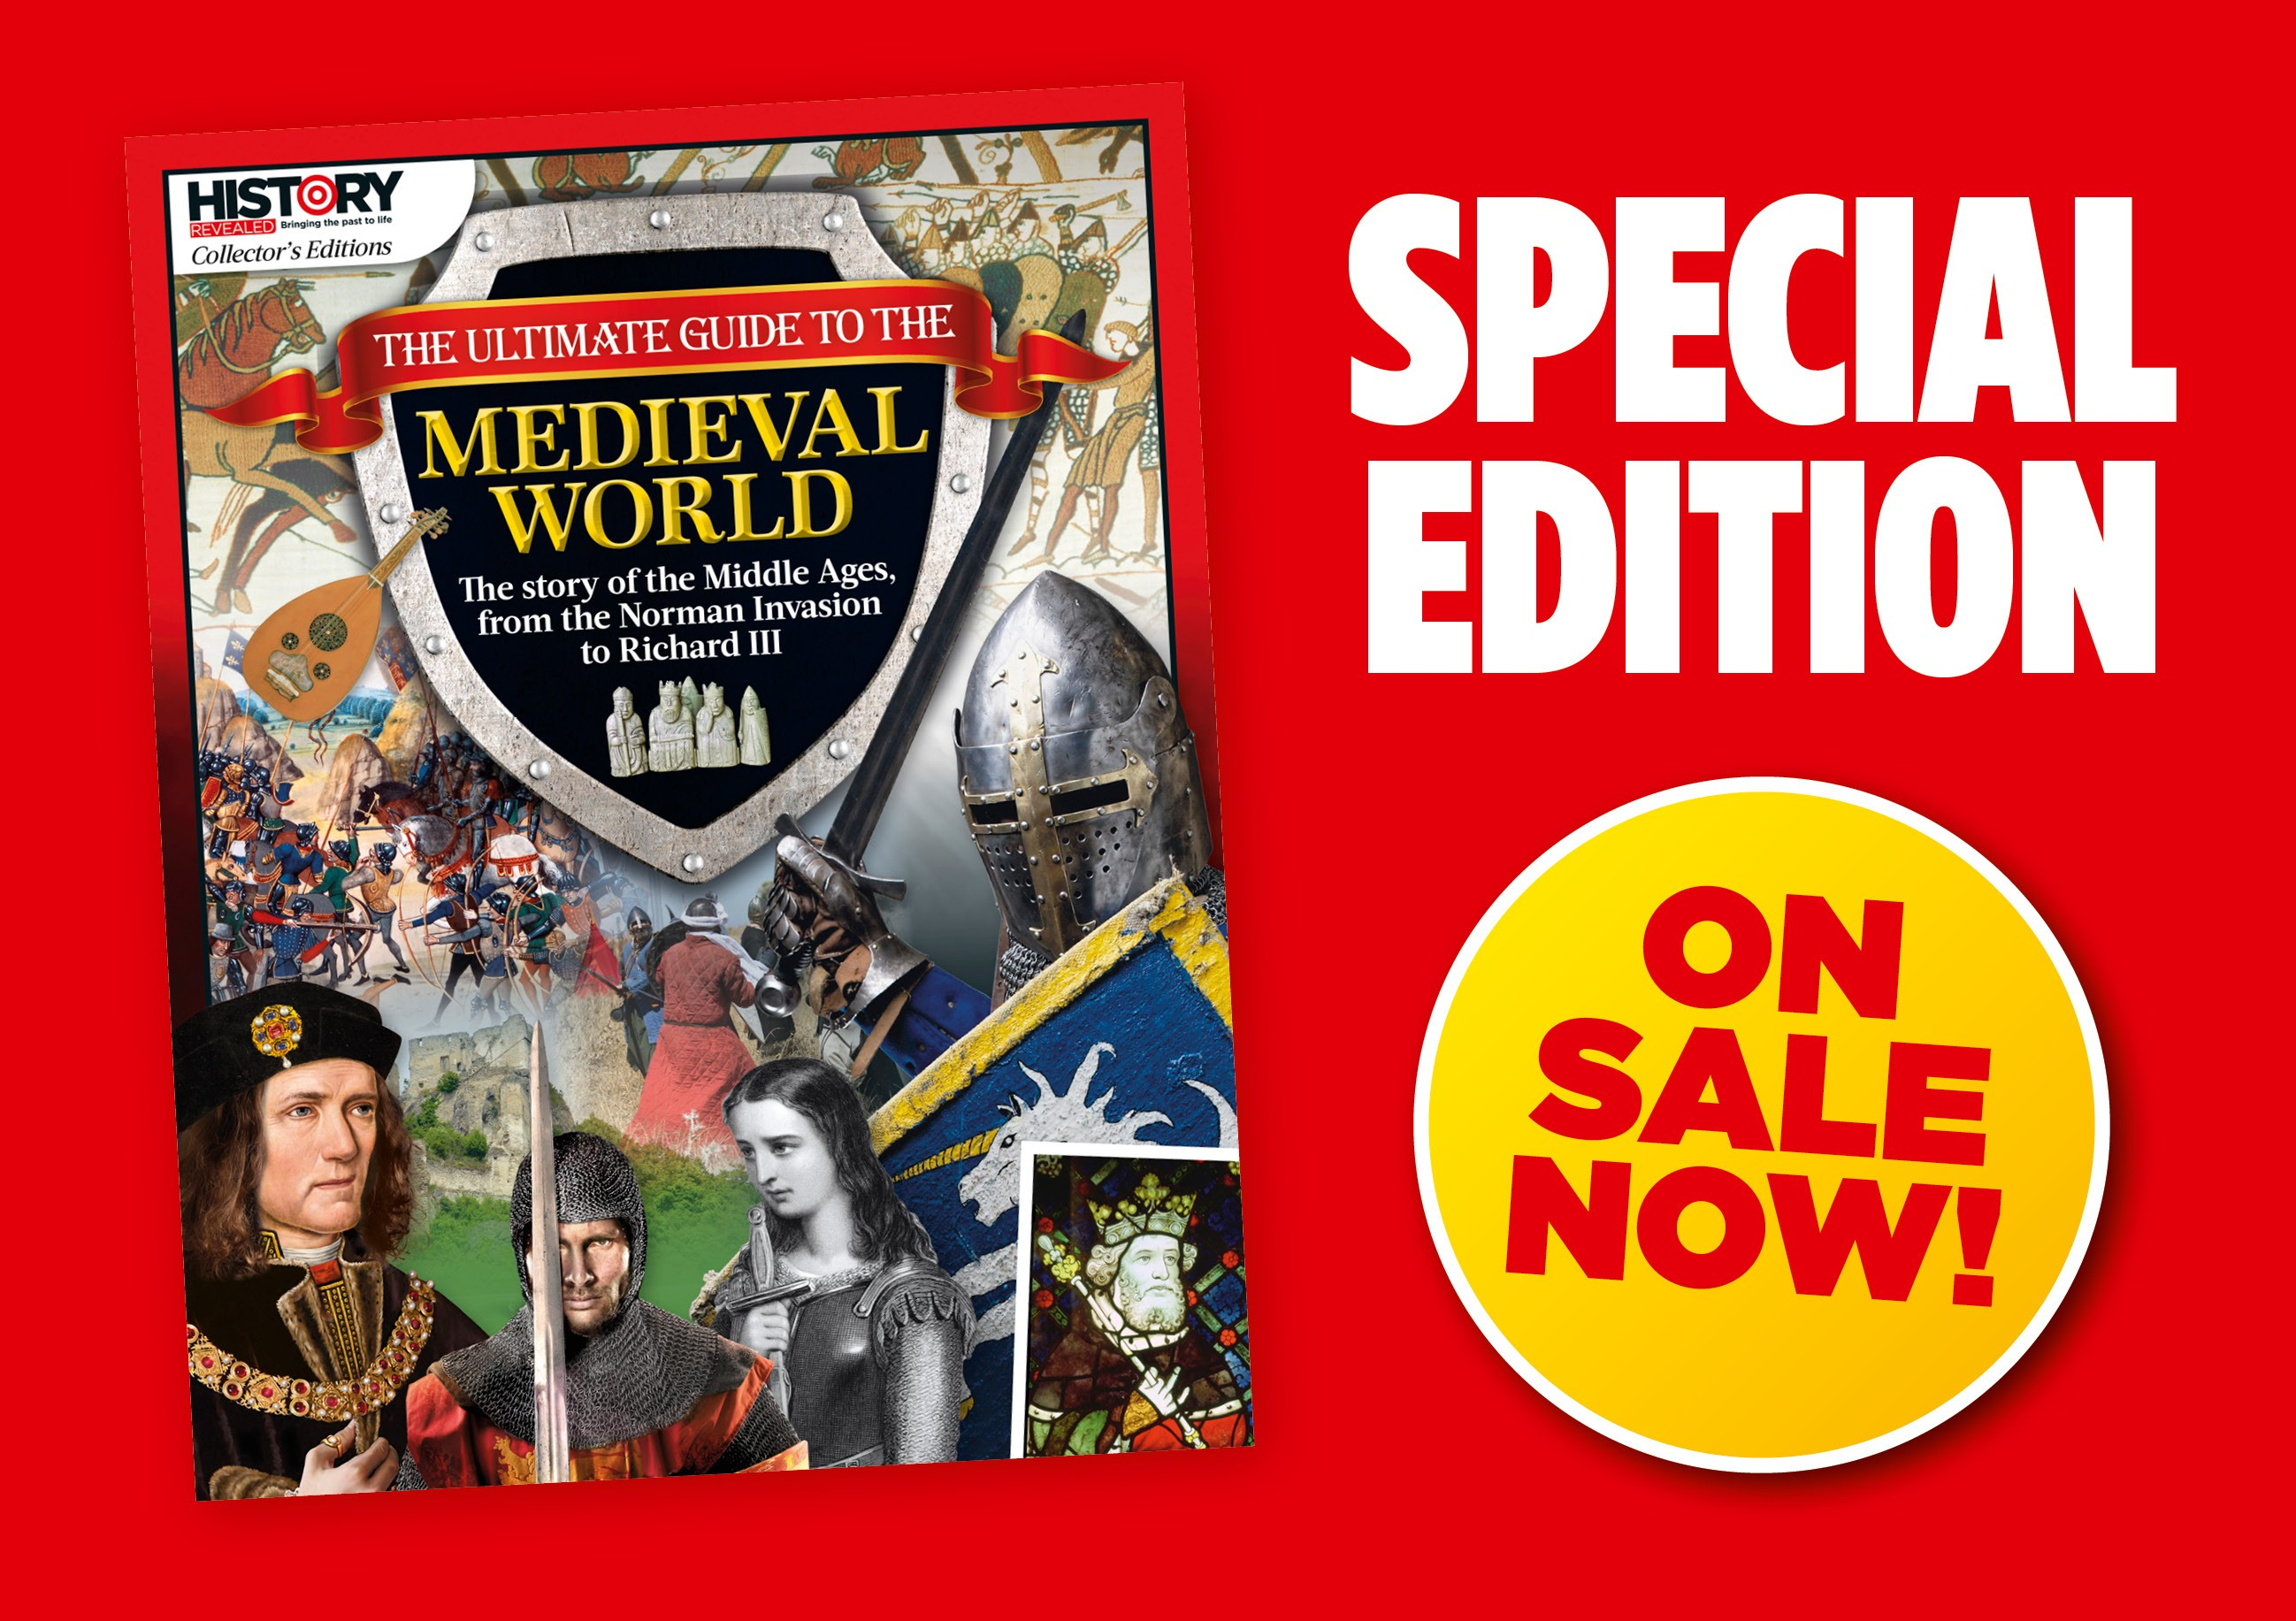 The Ultimate Guide to the Medieval World – on sale now